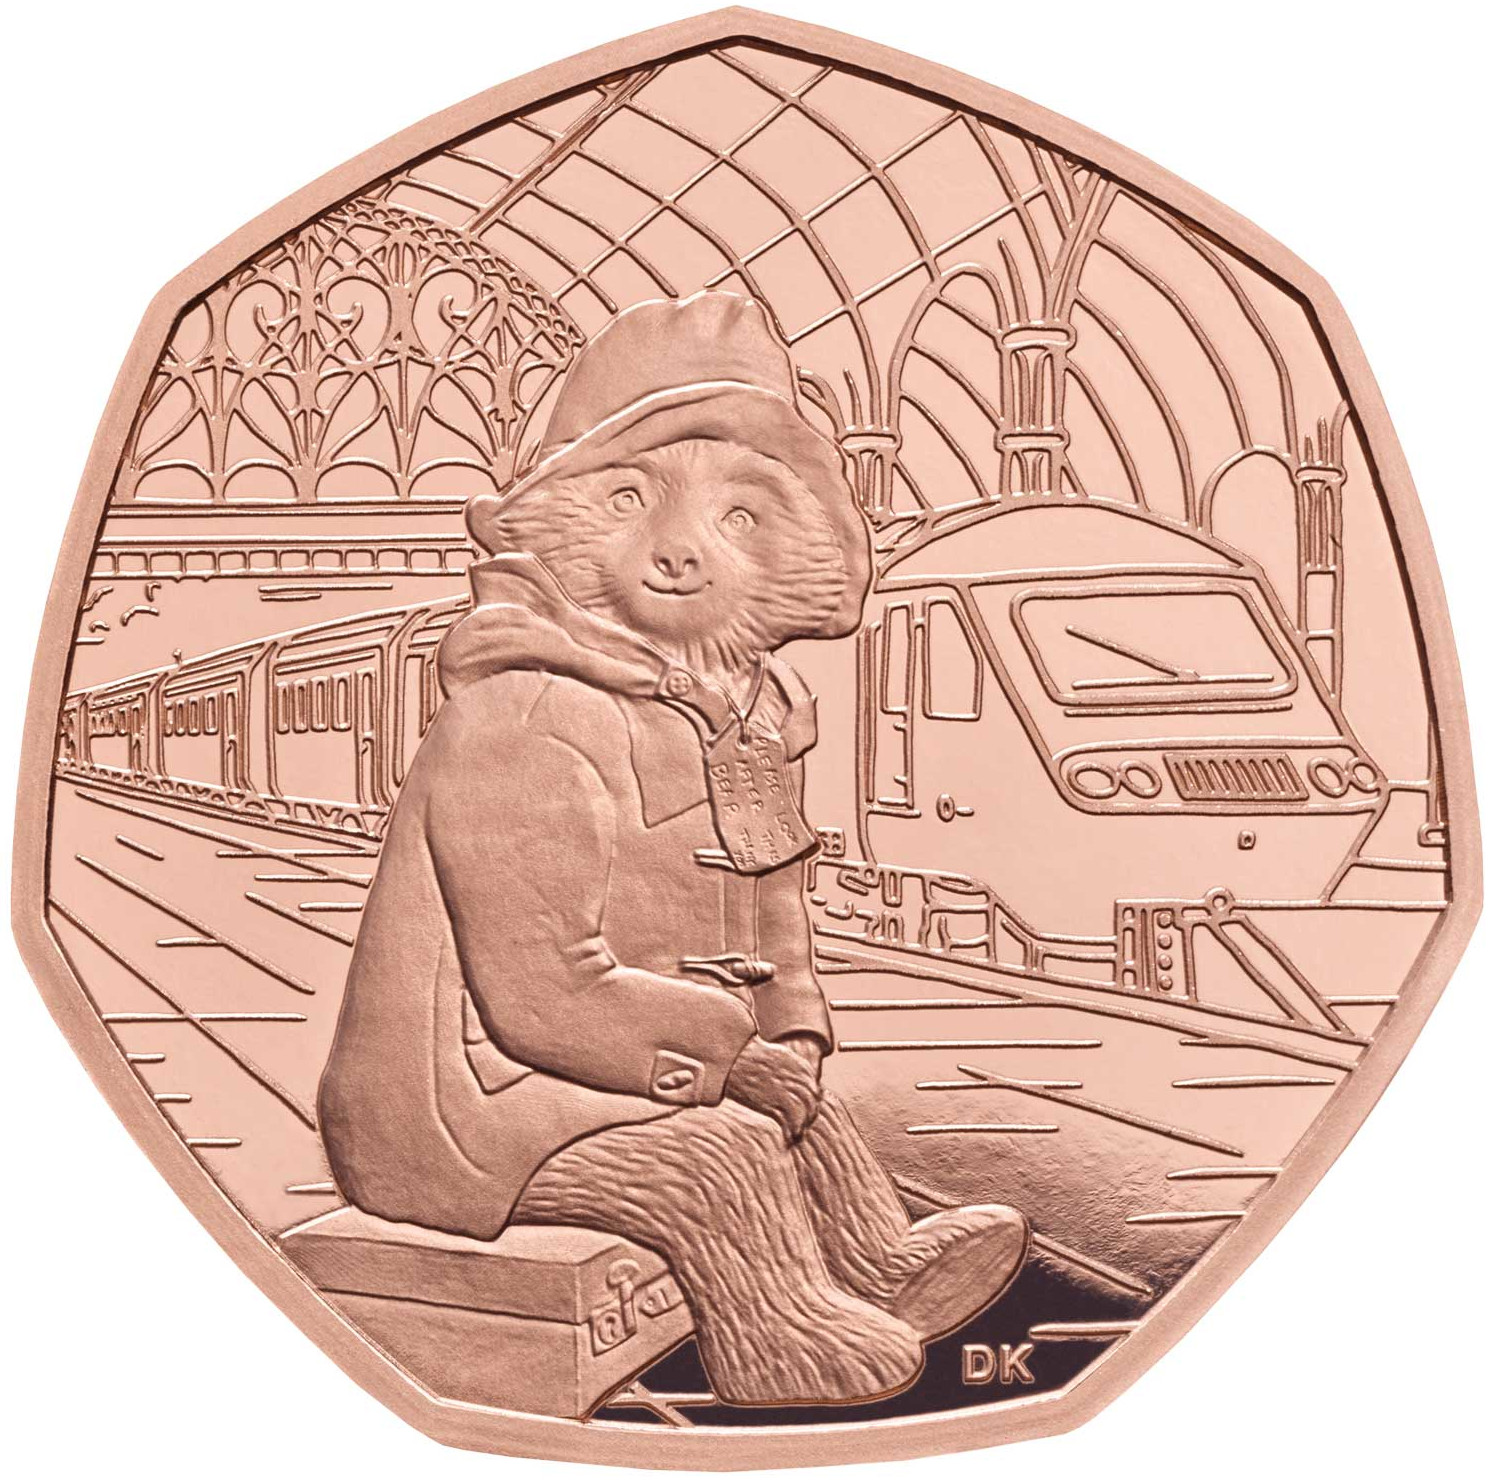 Fifty Pence 2018 Paddington Bear at the Station: Photo Paddington at the Station 2018 UK 50p Gold Proof Coin